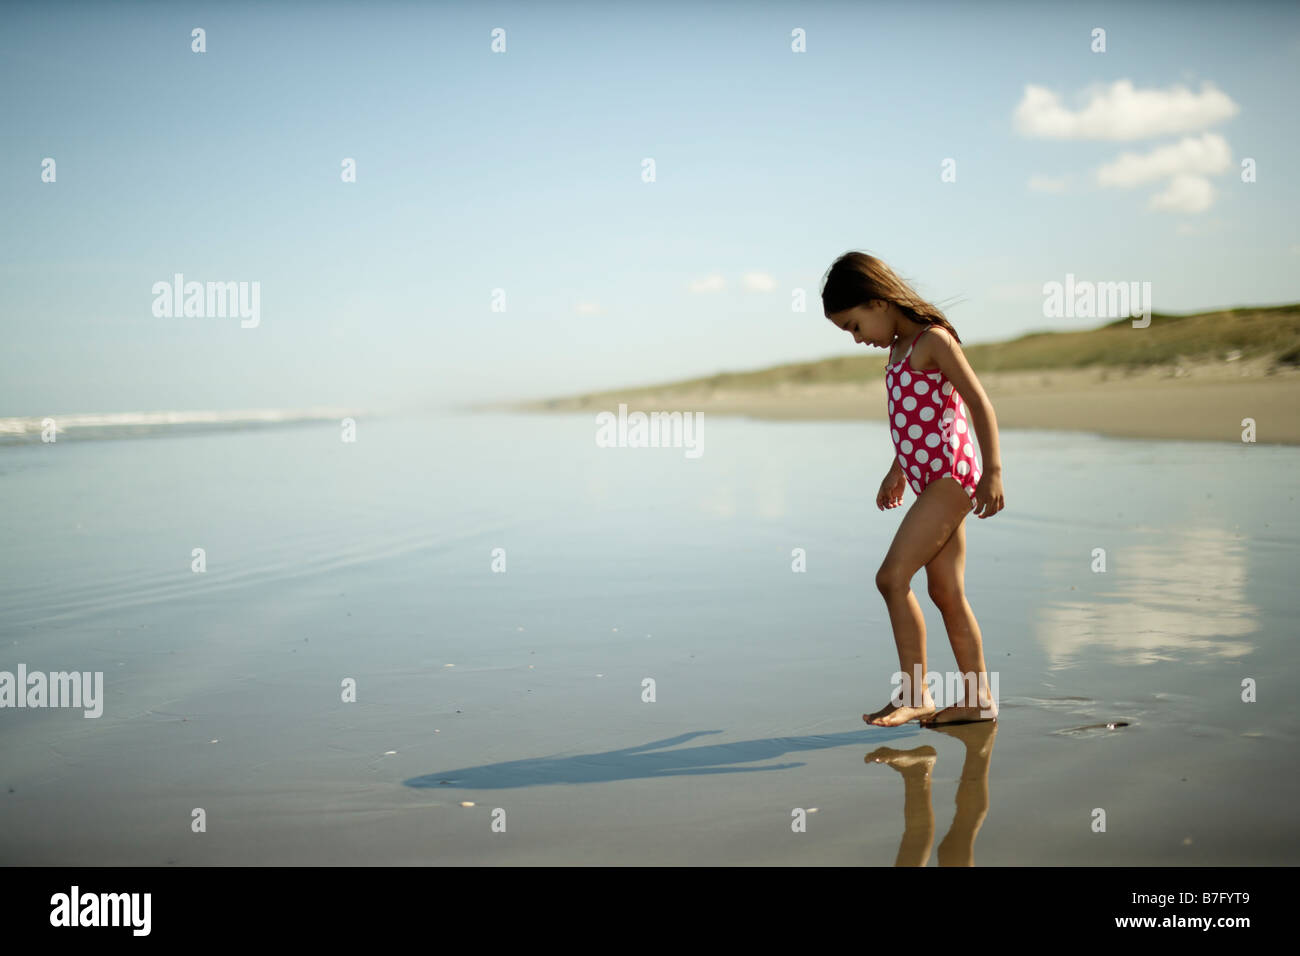 Himatangi beach New Zealand, five year old girl plays in sea - Stock Image